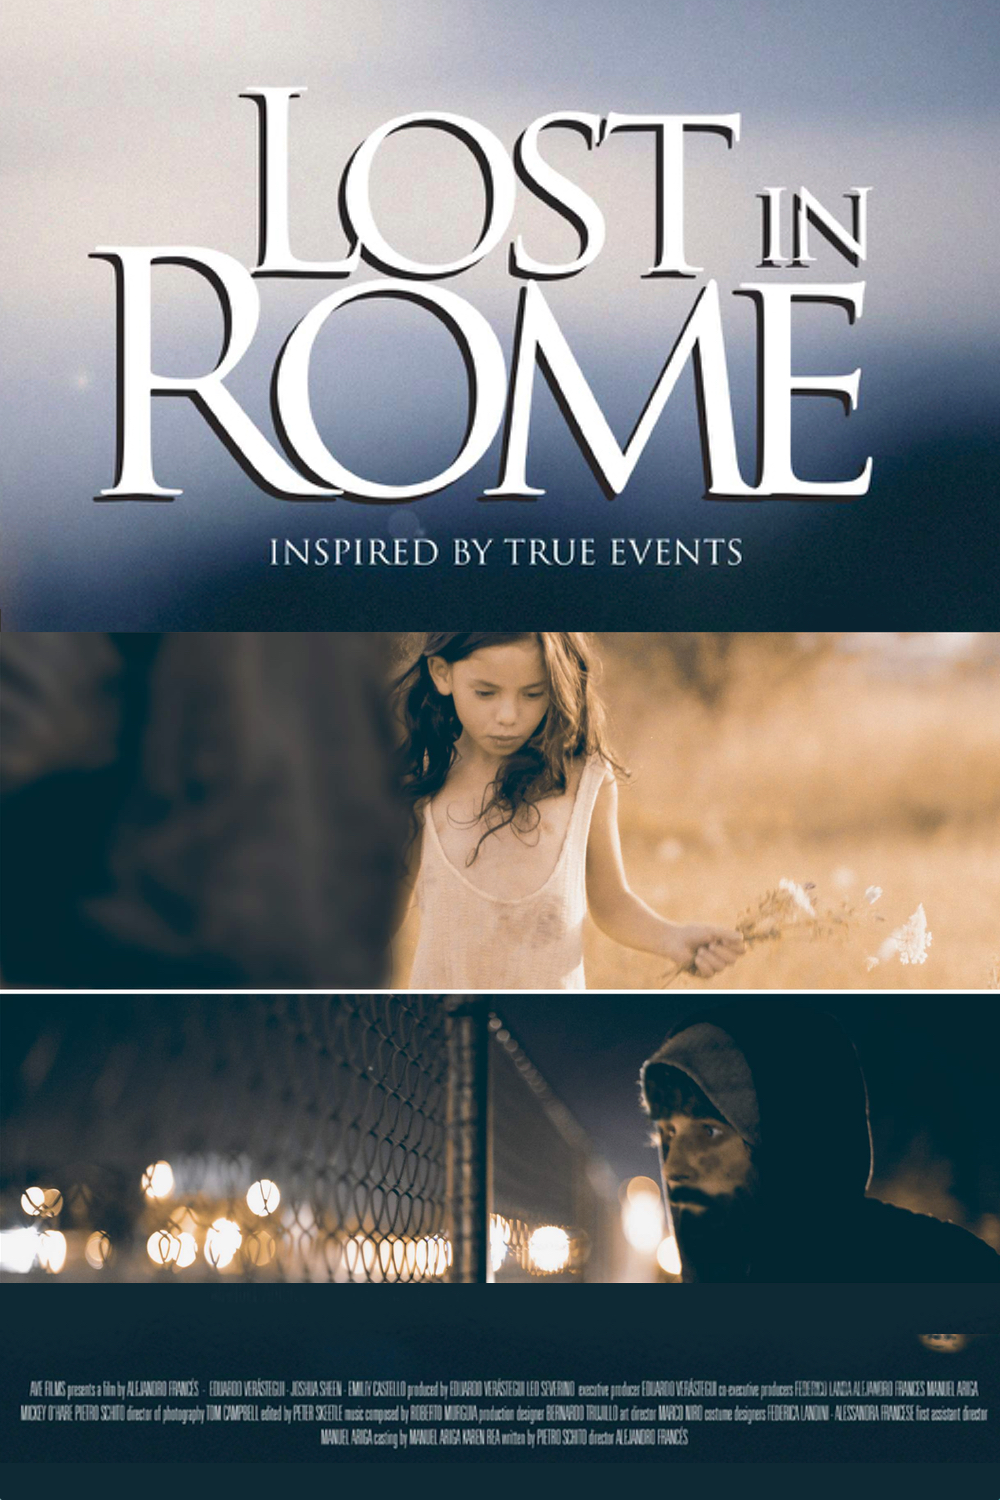 Lost in Rome Posters.jpg